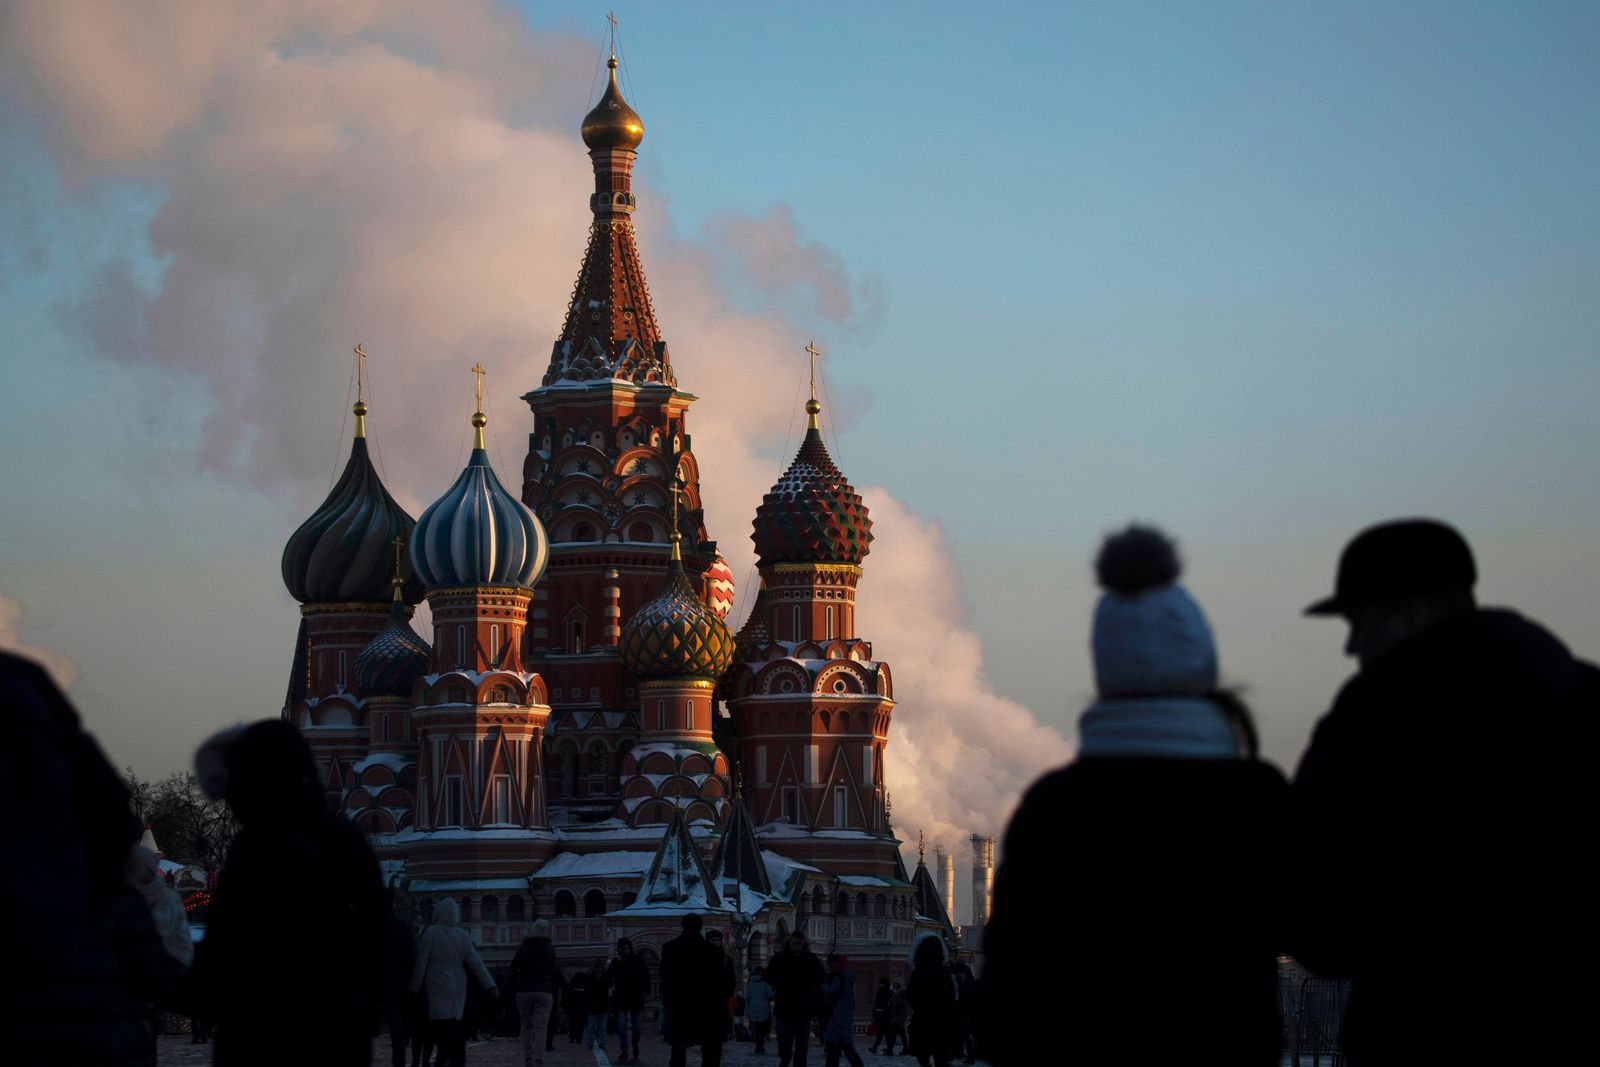 FILE - In this Thursday, Jan. 24, 2019 file photo, people walk in Red Square on a cold day, with St. Basil's Cathedral in the background, in Moscow, Russia. (AP Photo/Pavel Golovkin, File)